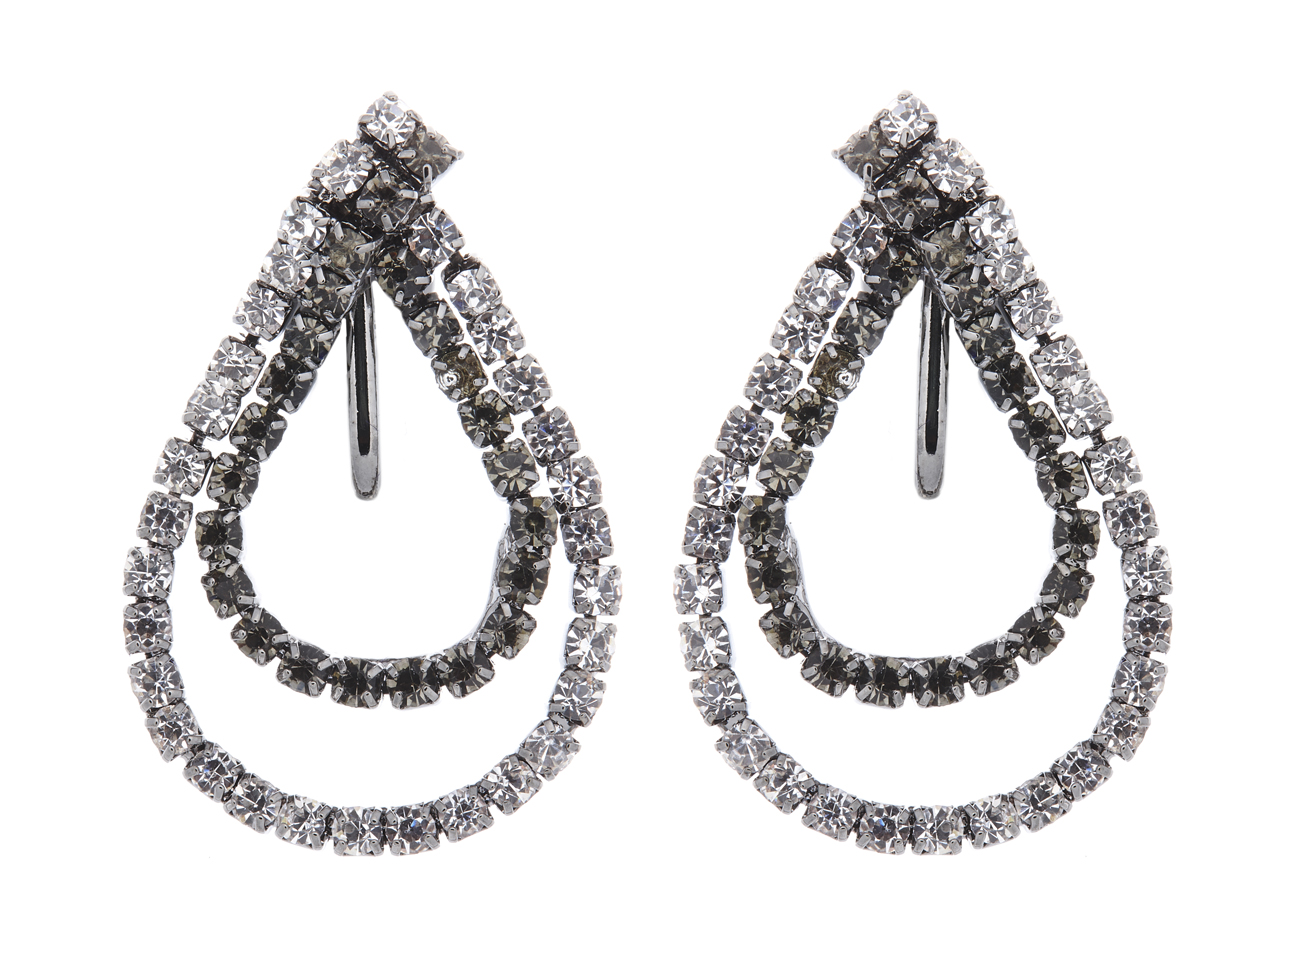 Clip on earrings - May G - gunmetal grey drop earring with clear and grey crystal loops